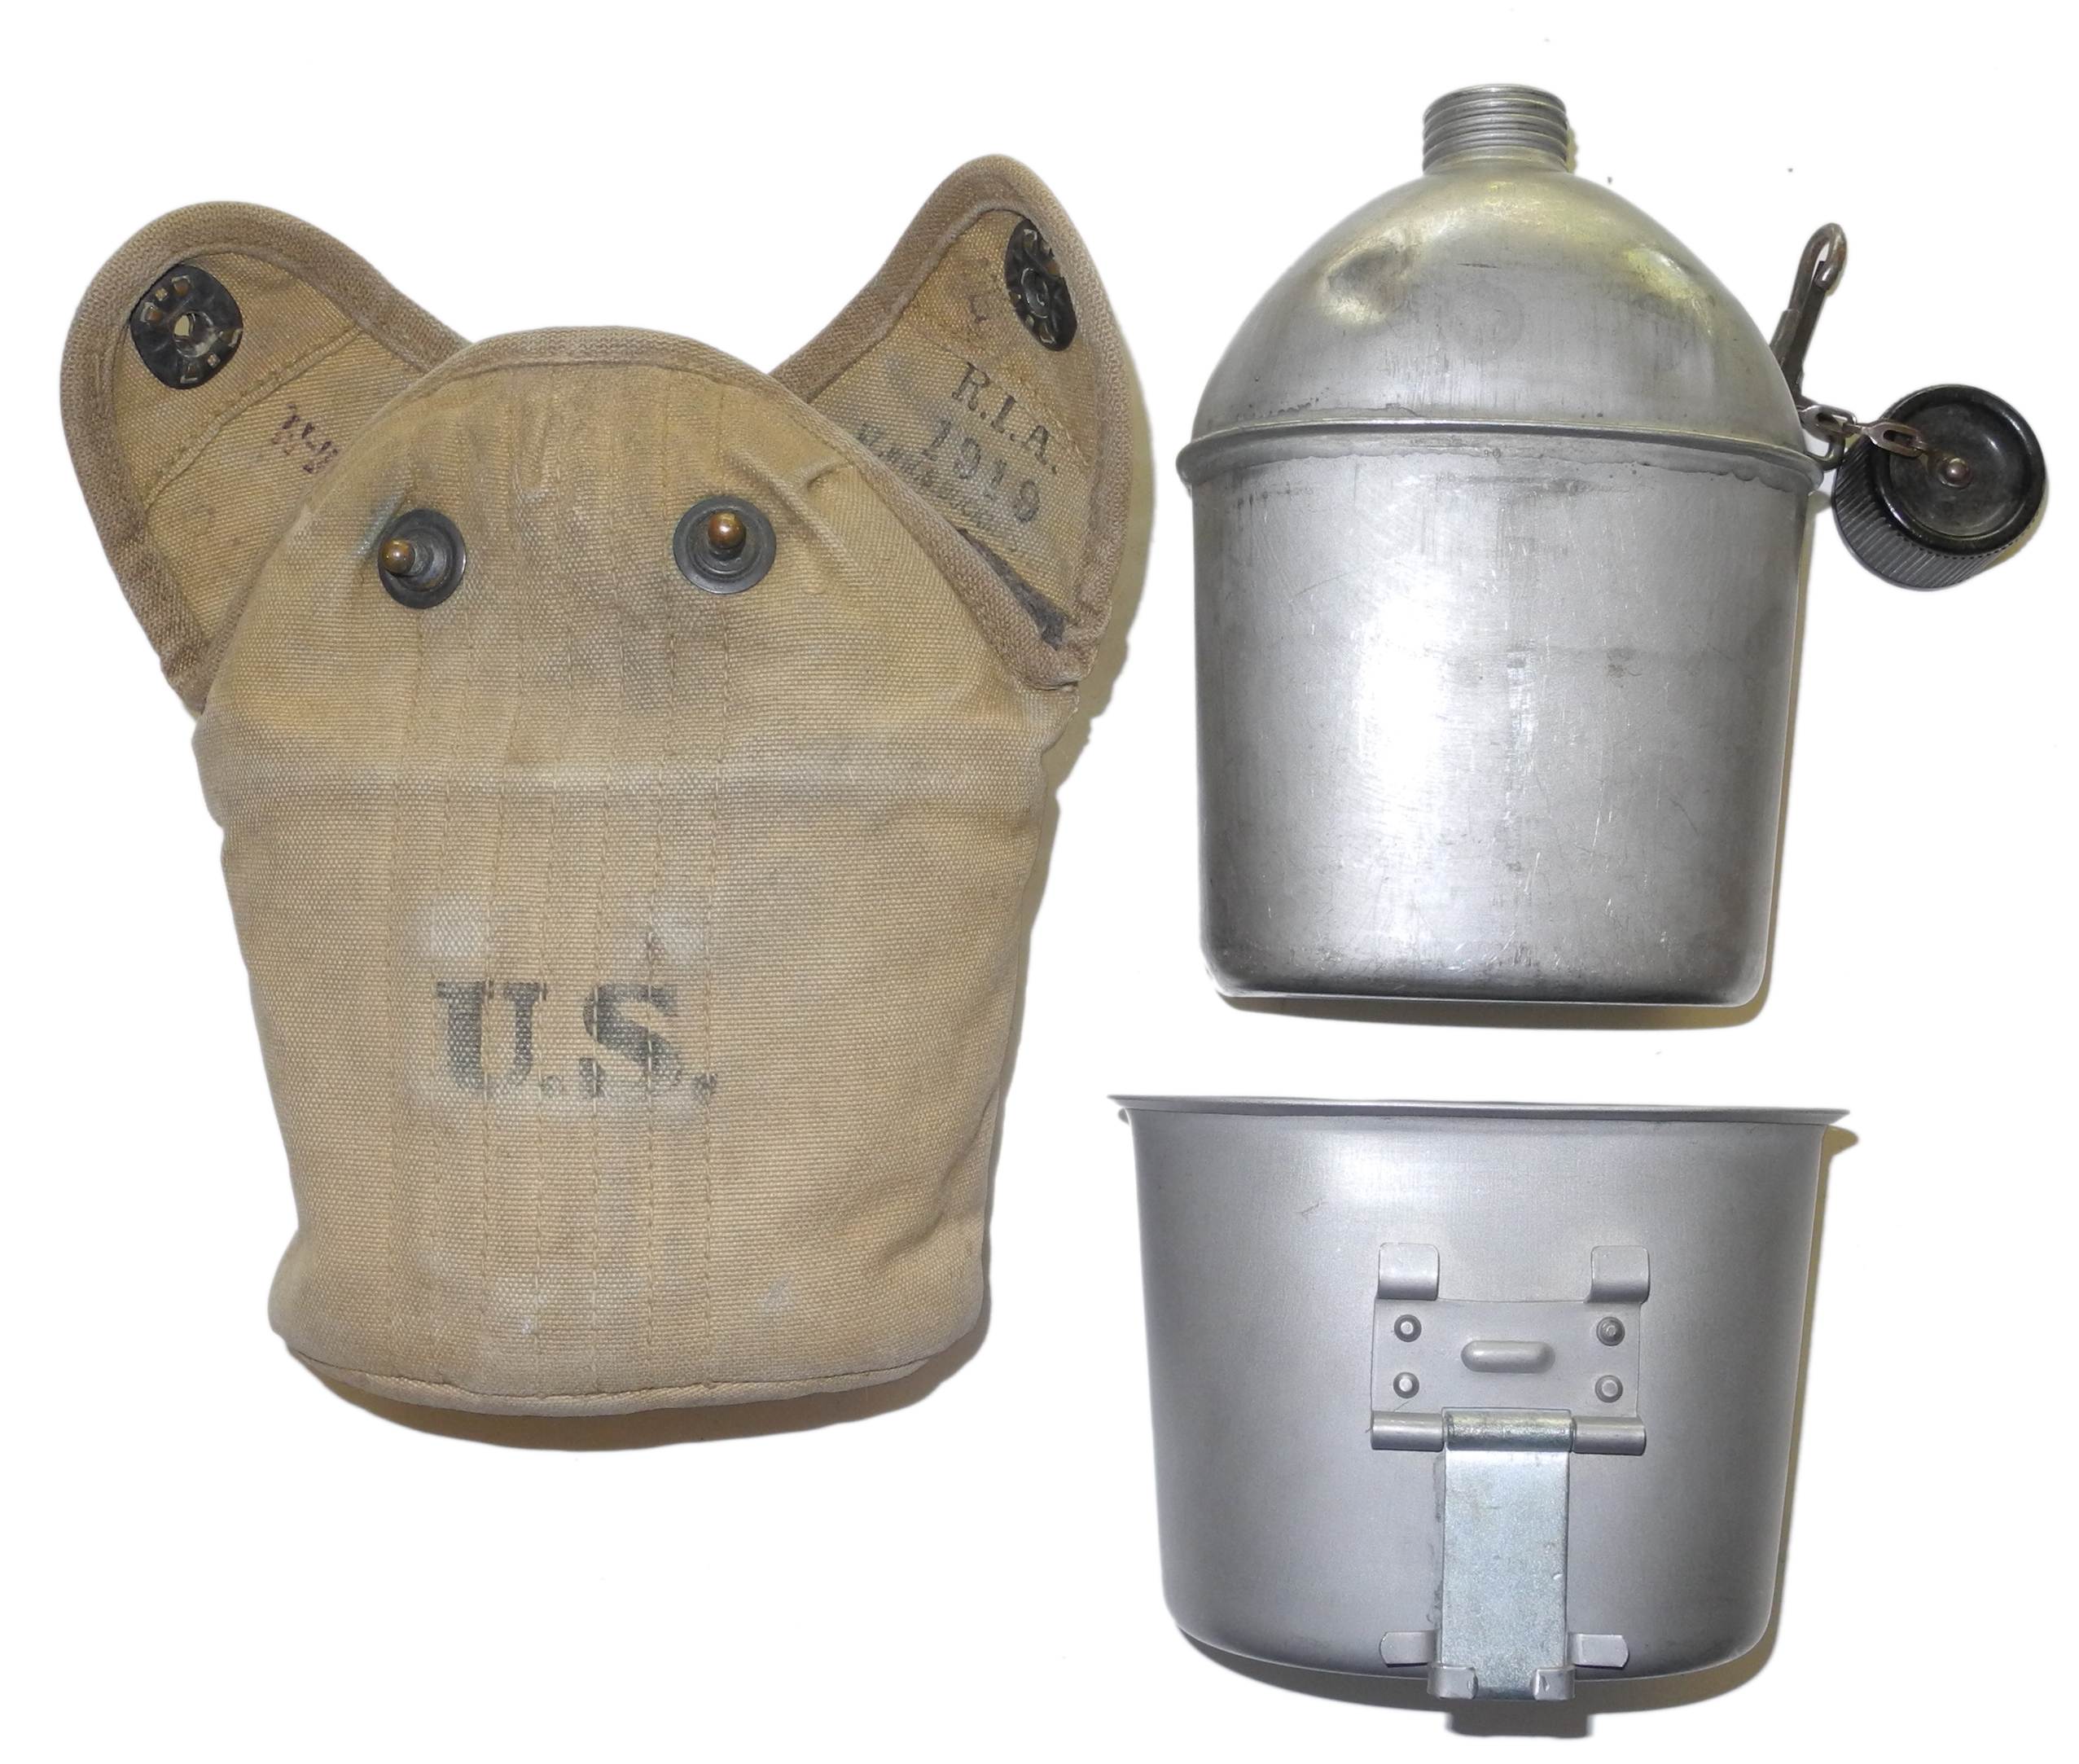 US Army belt and mess kit4389